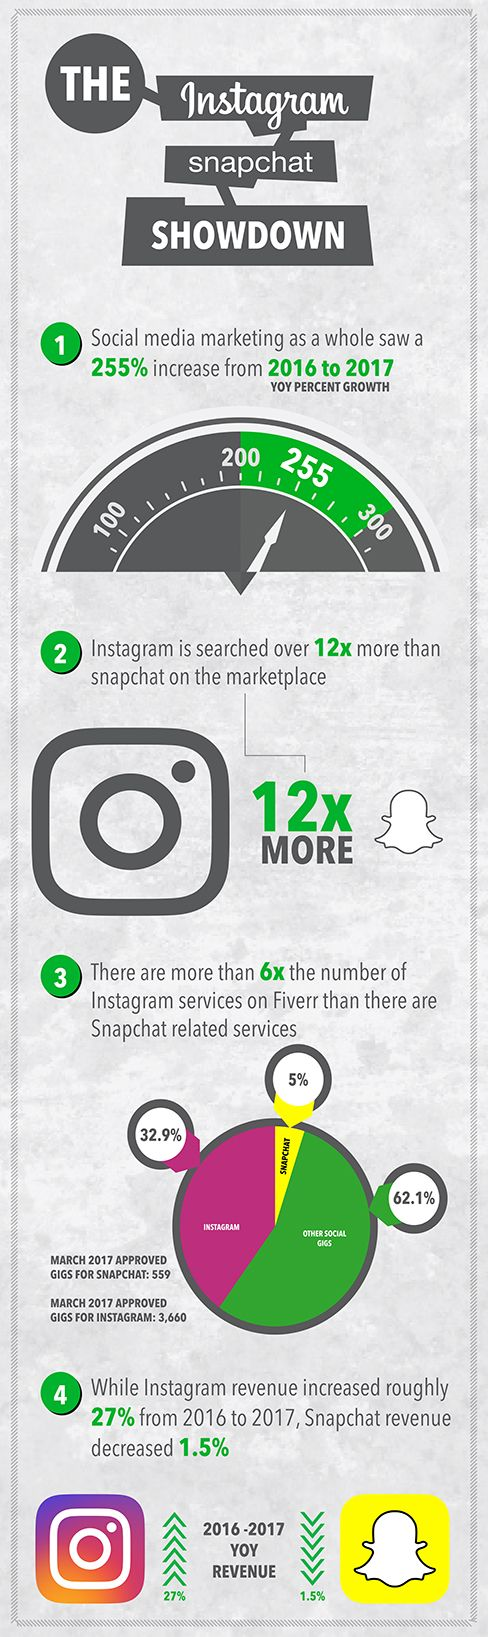 Marketers Are Searching for Instagram Services 12X More Than Snapchat's (Infographic)